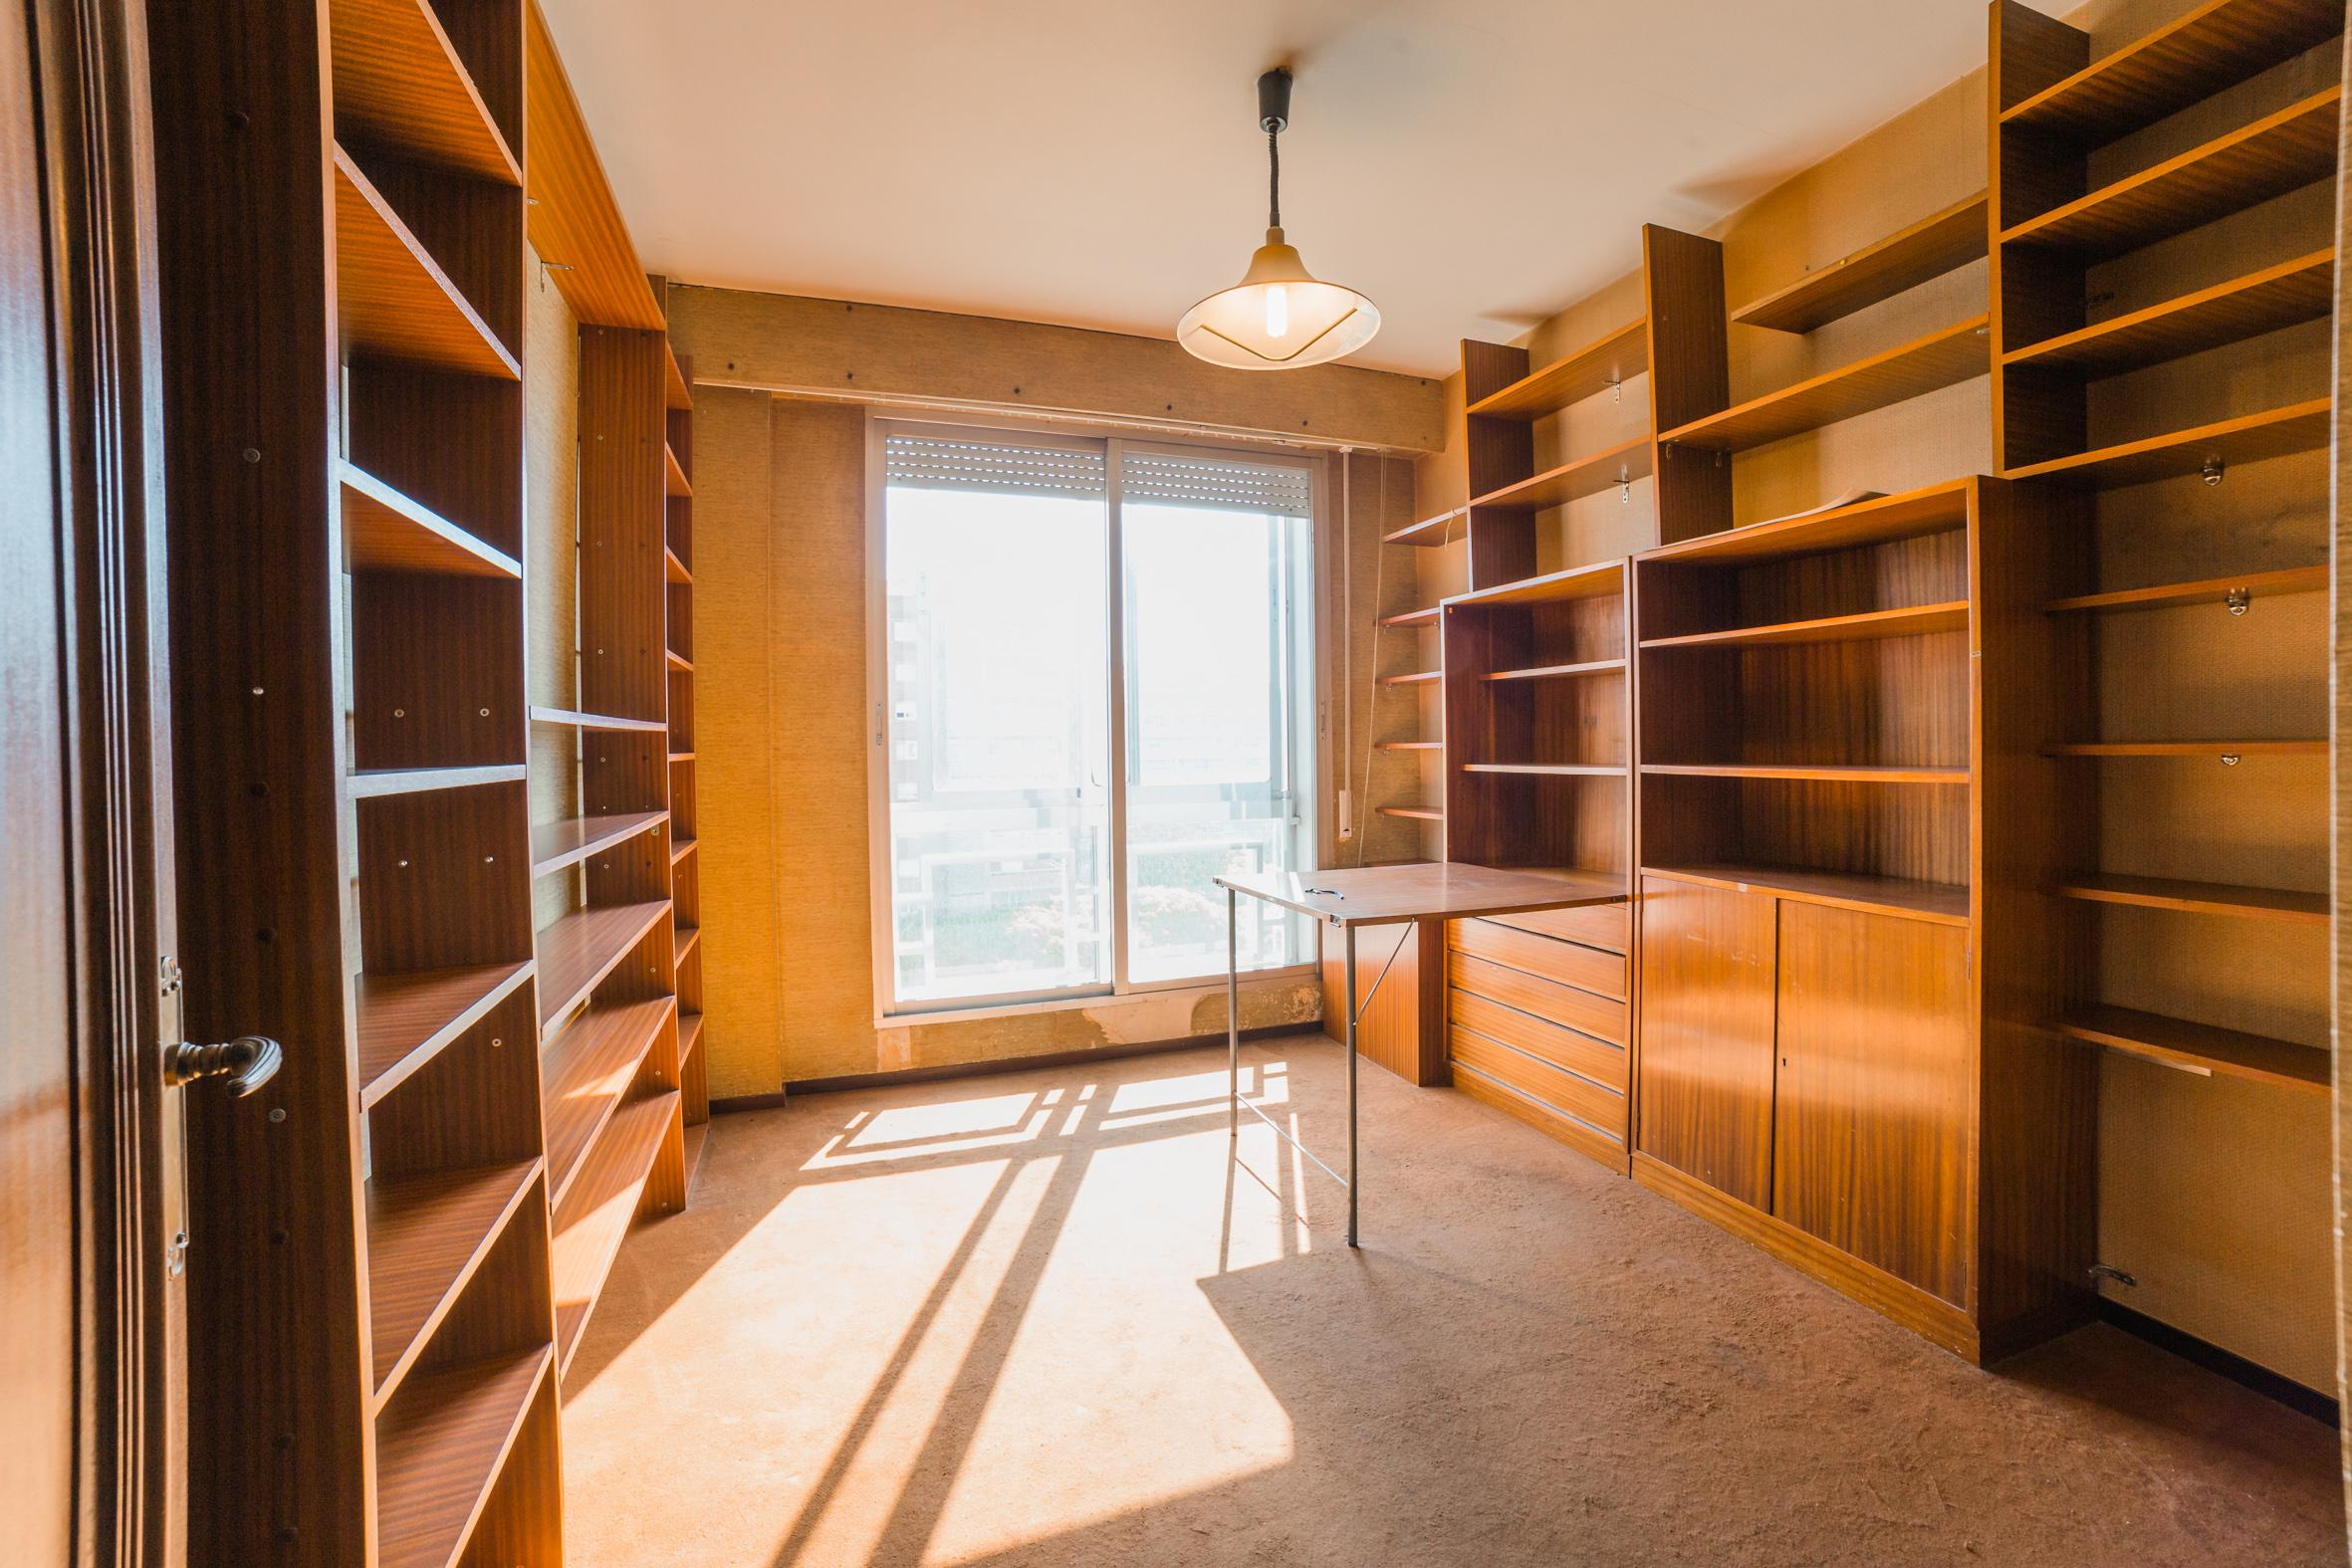 248988 Flat for sale in Les Corts, Les Corts 19